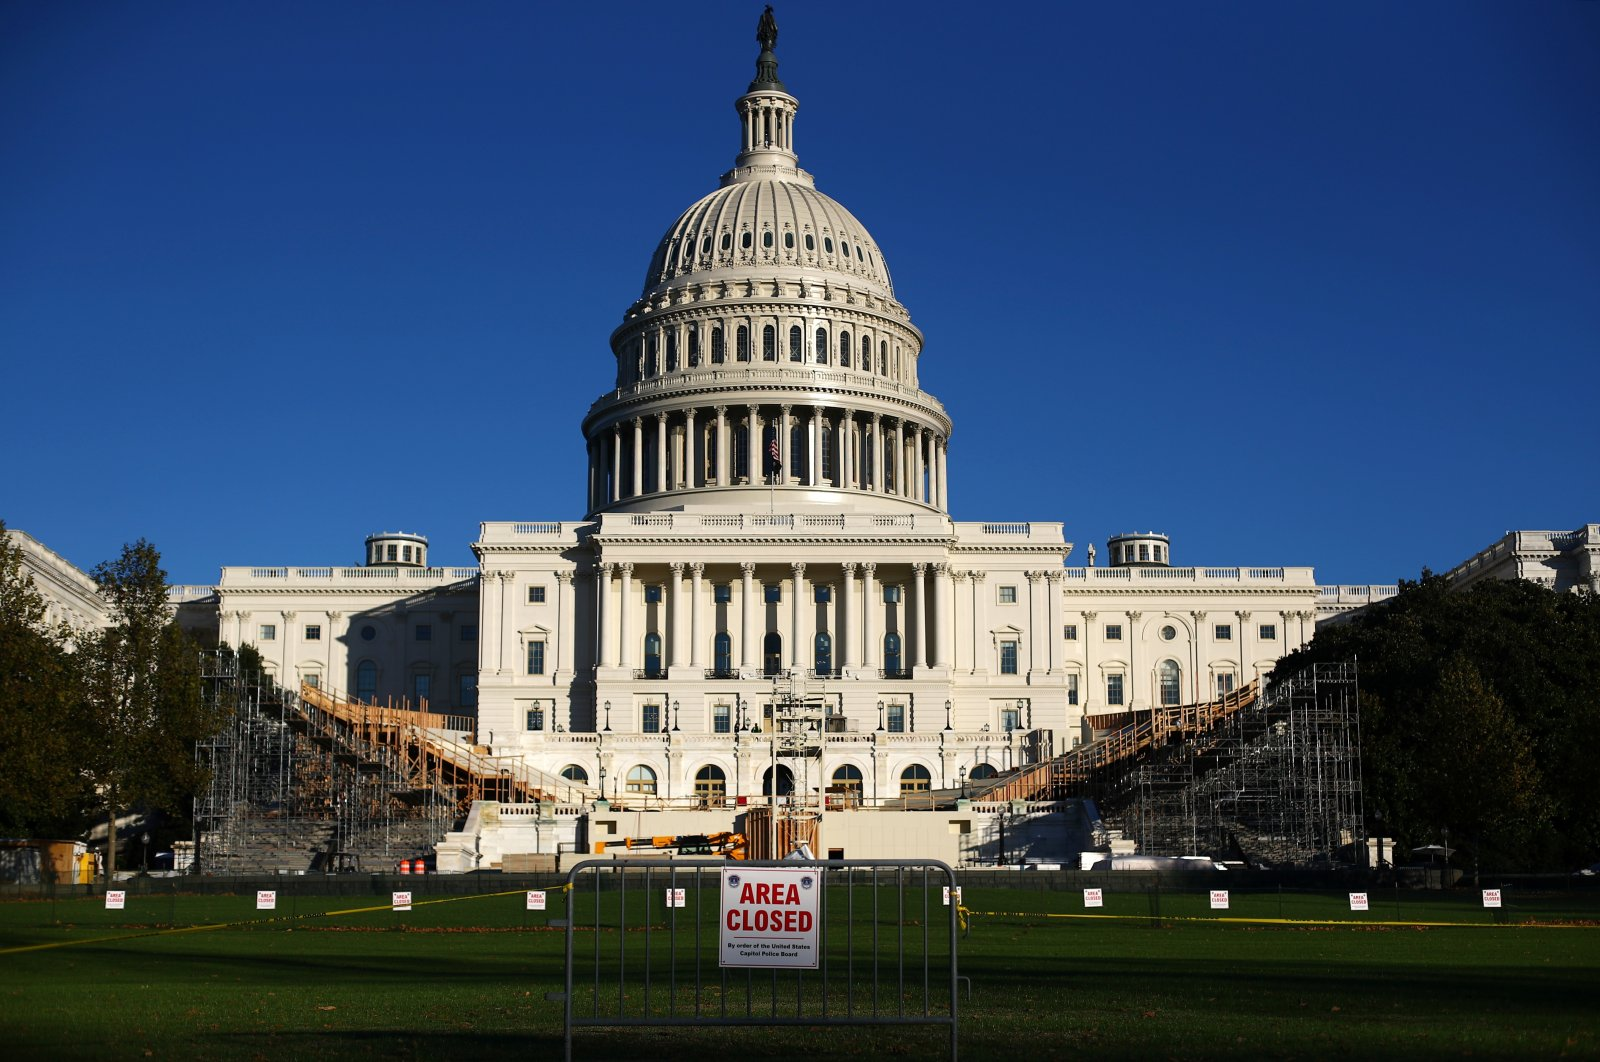 The inaugural platform is seen under construction in front of the U.S. Capitol building in Washington, U.S. Nov.16, 2020. (Reuters Photo)